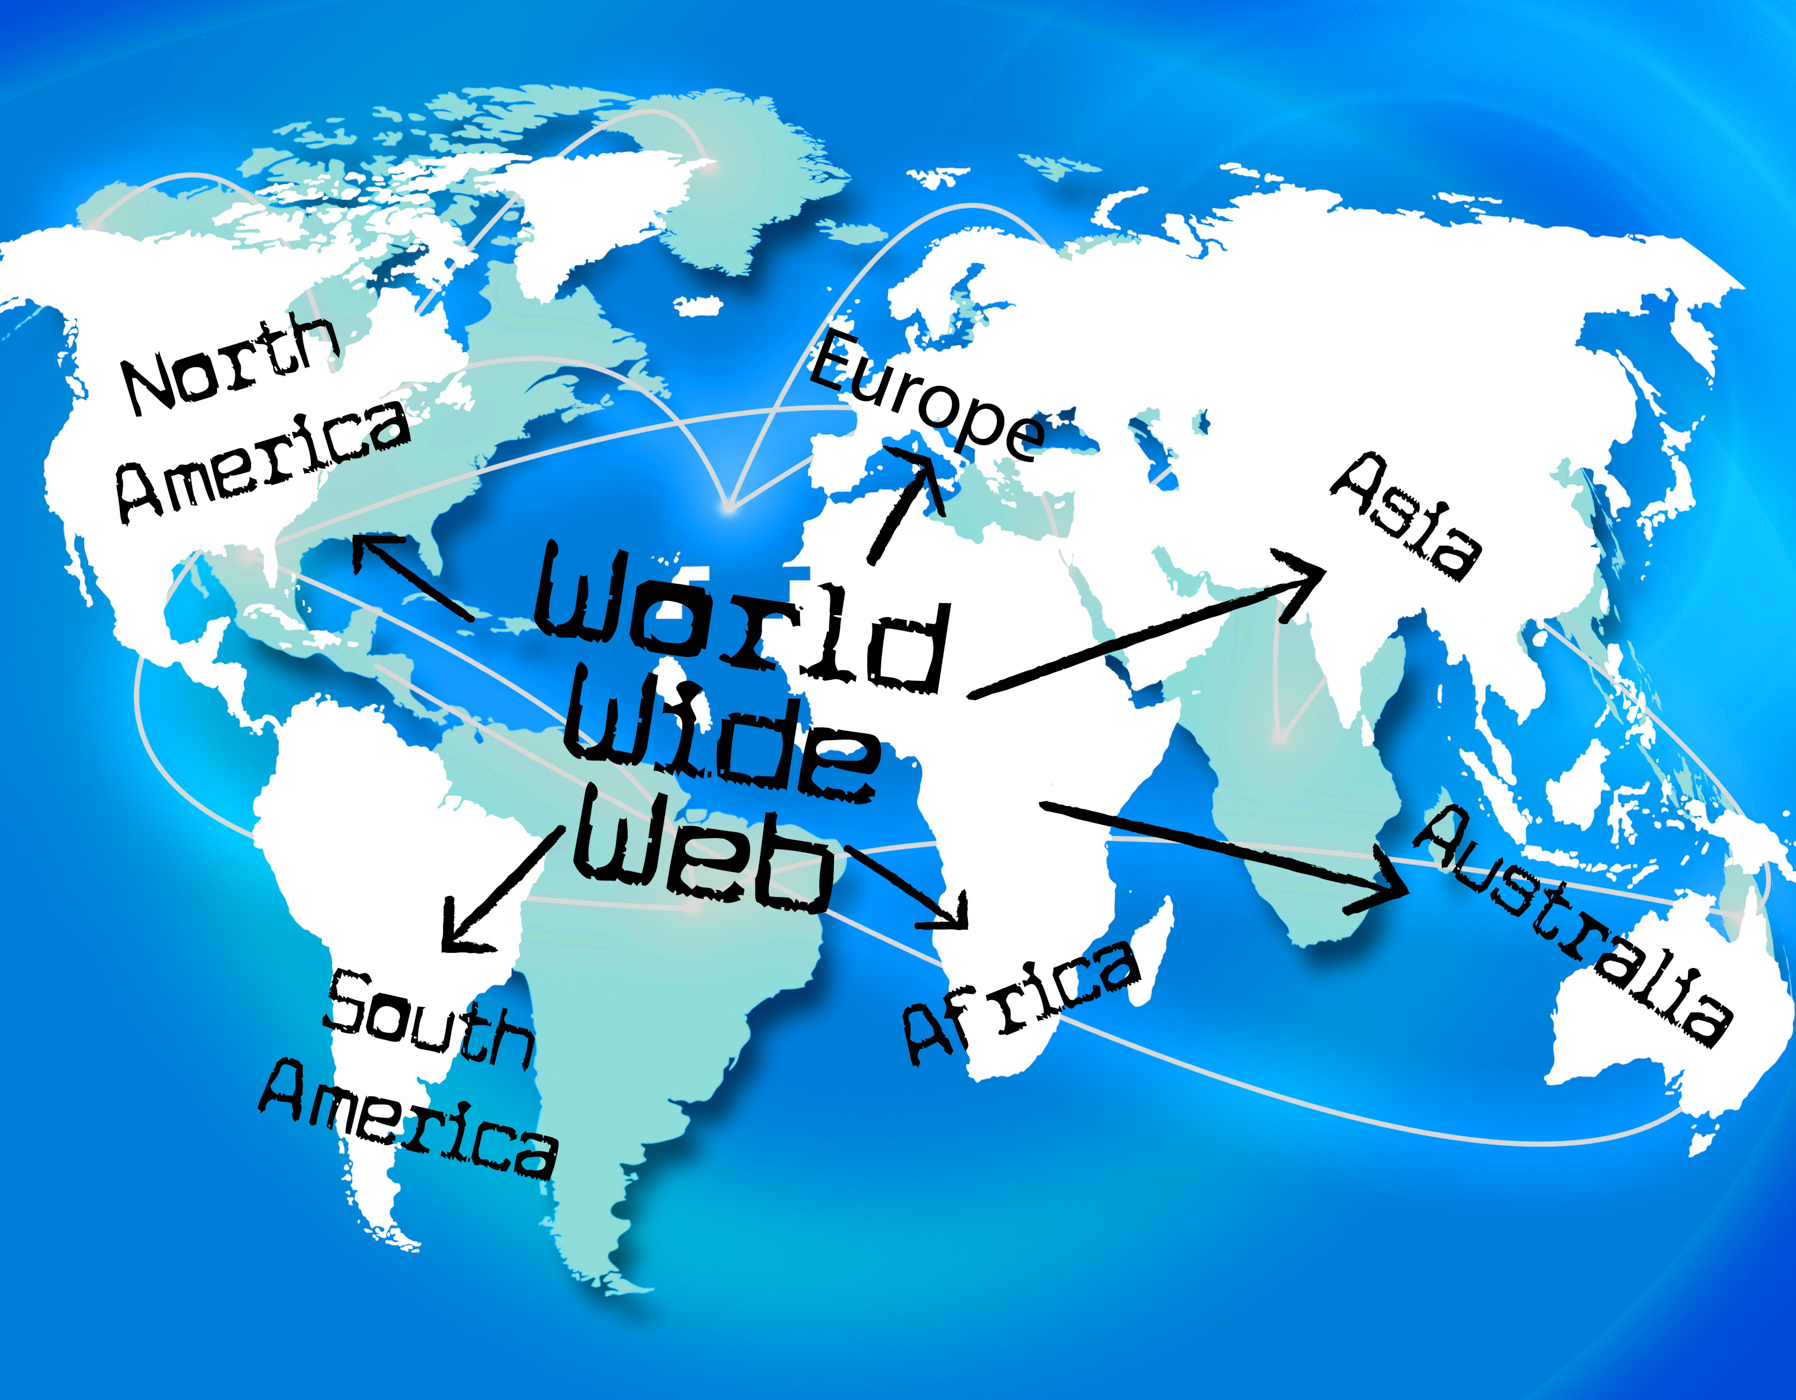 World wide web shows searching globalize and online photo